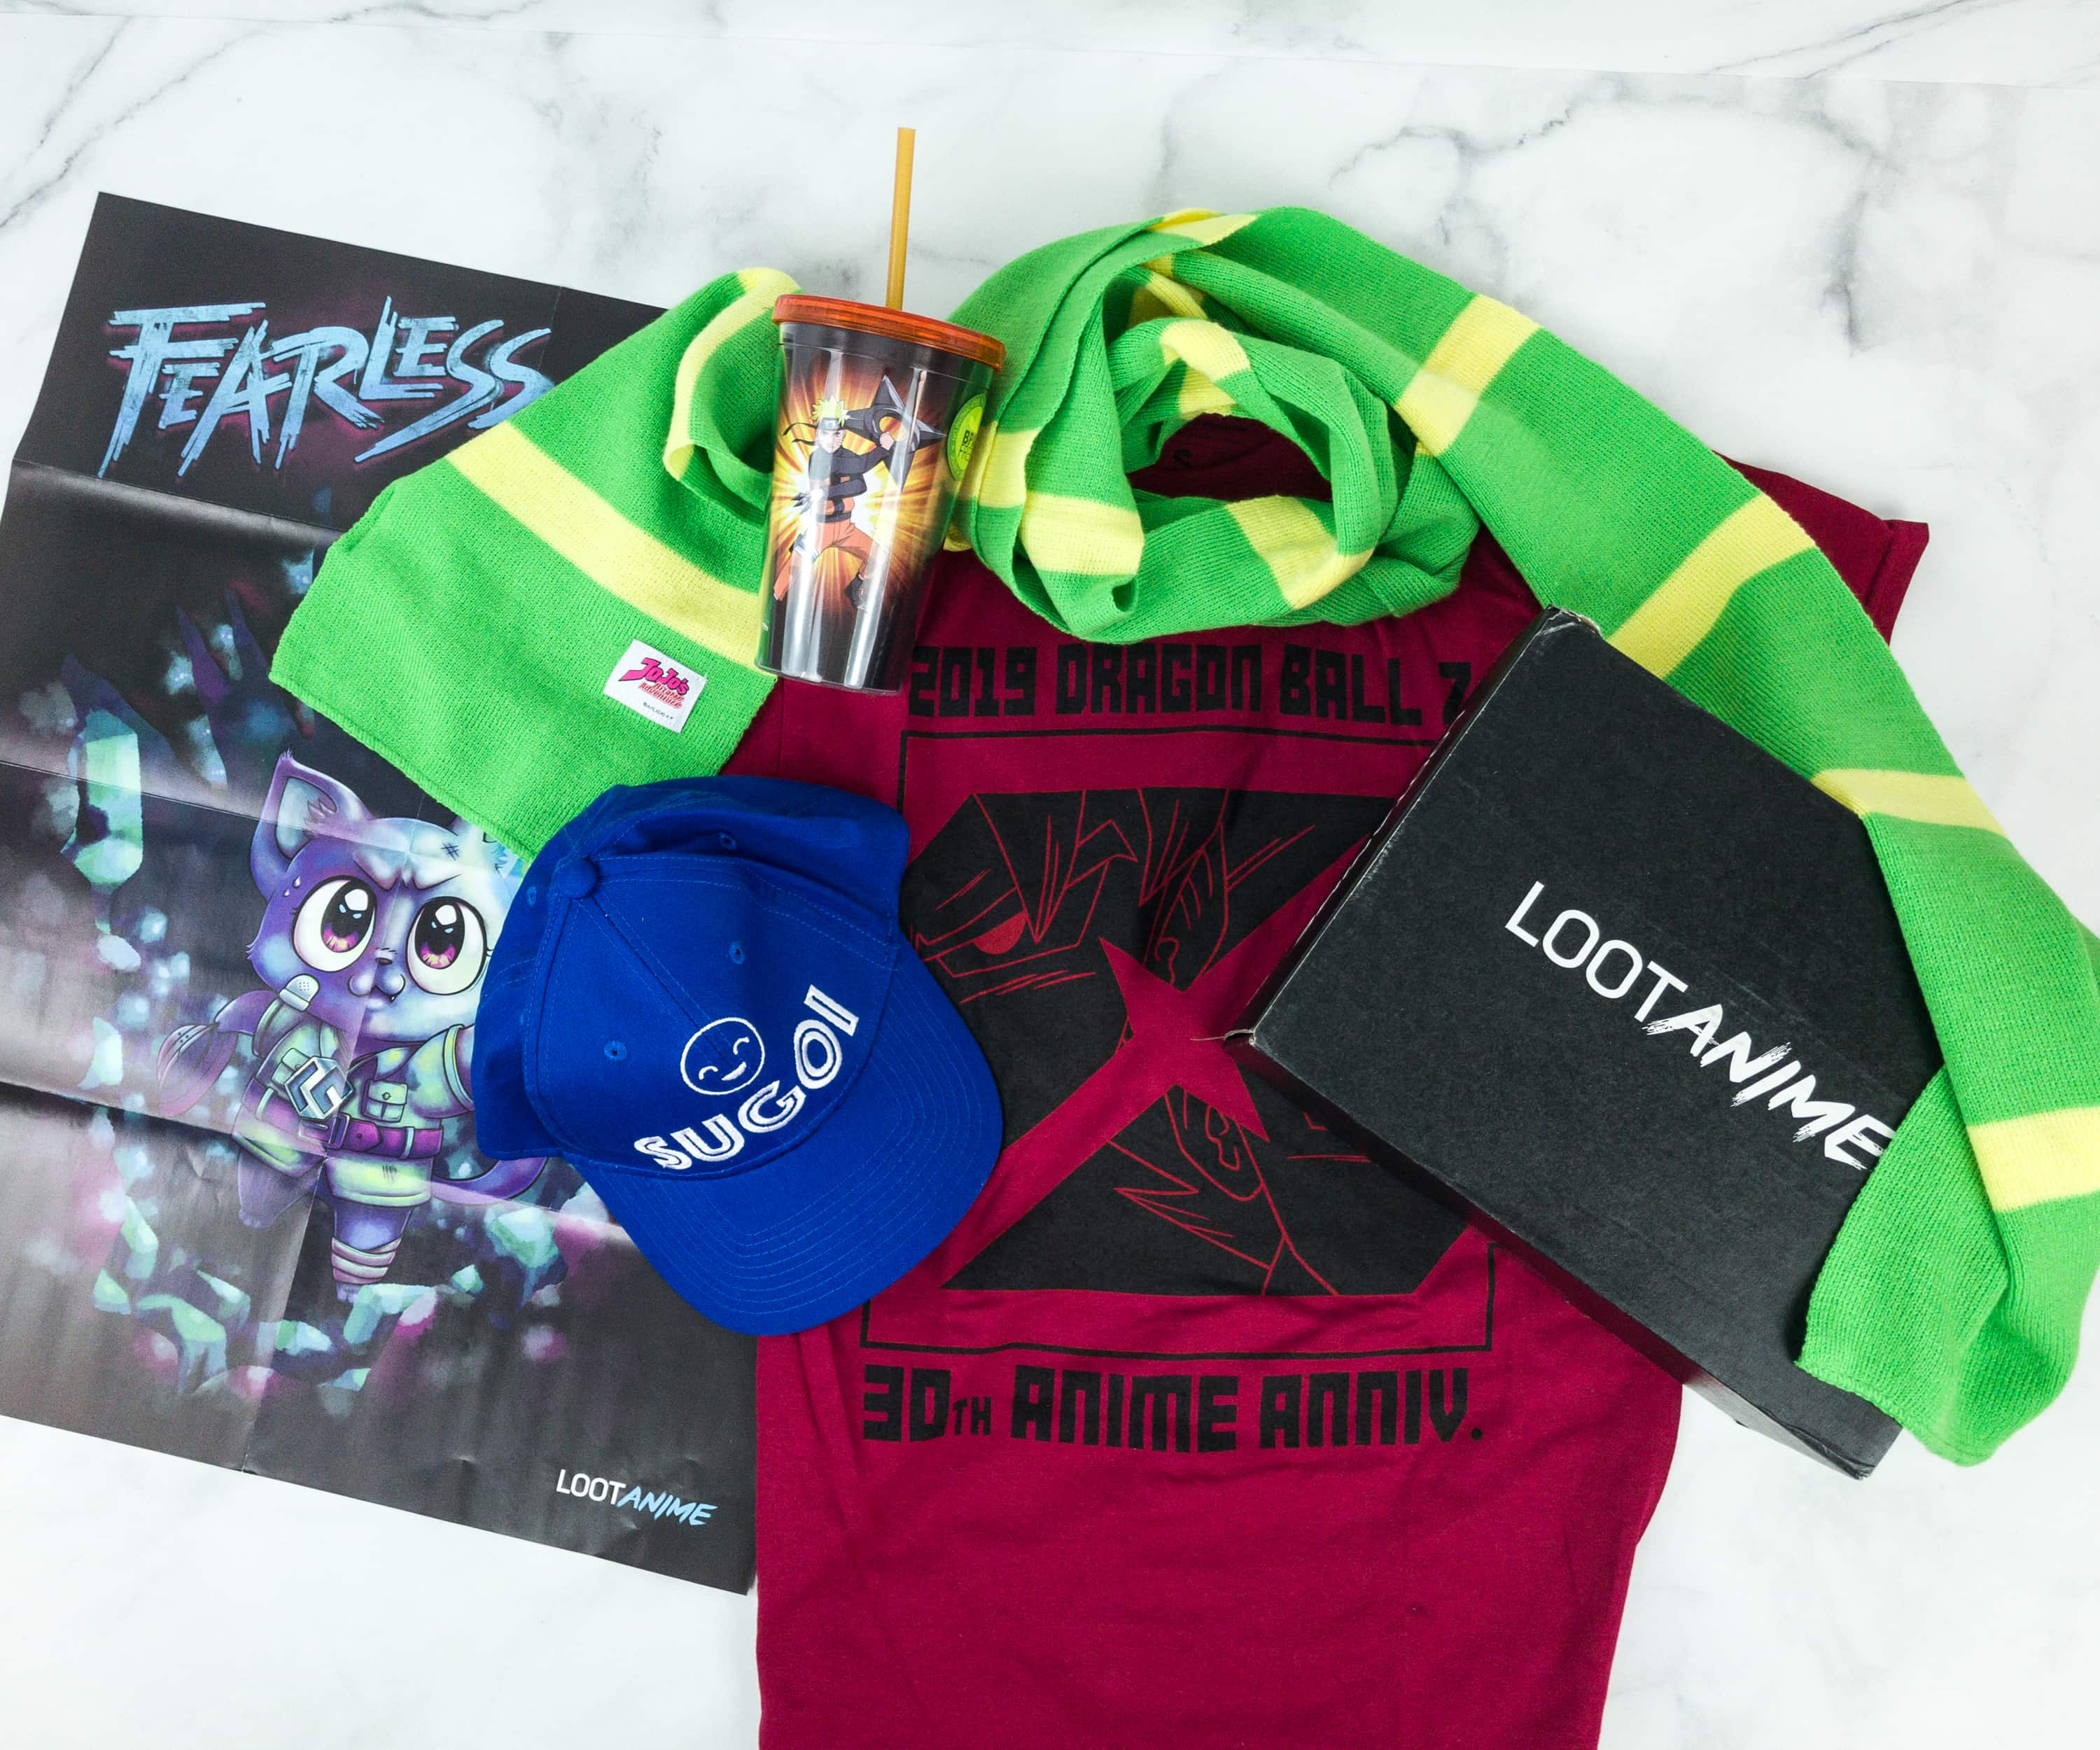 Loot Anime December 2018 Subscription Box Review & Coupons – FEARLESS